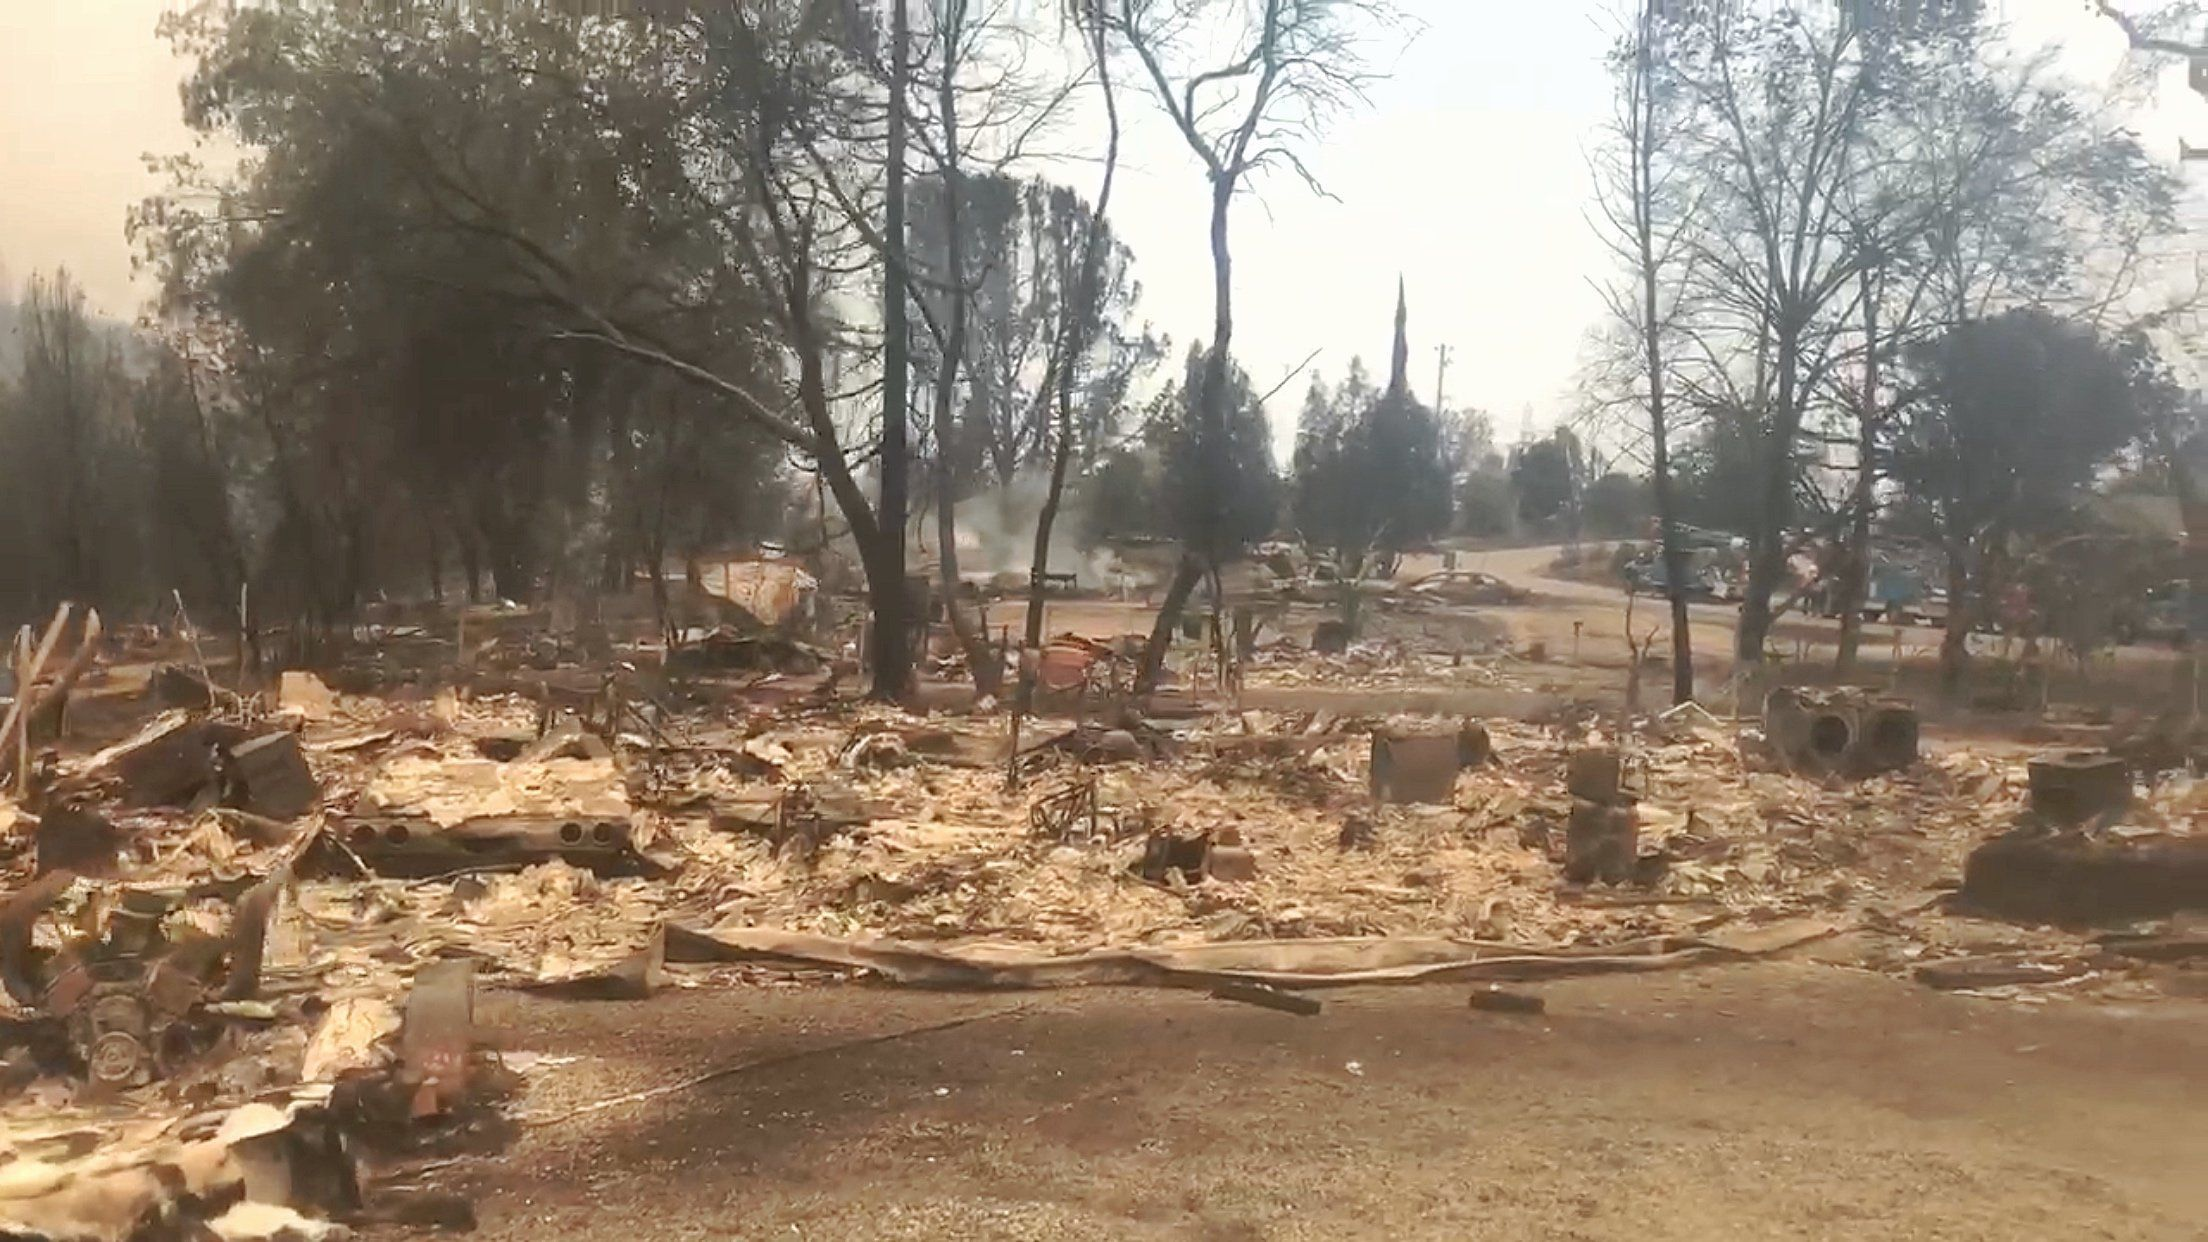 Cat, chicken found 'huddled together' as wildfire burns California neighborhood